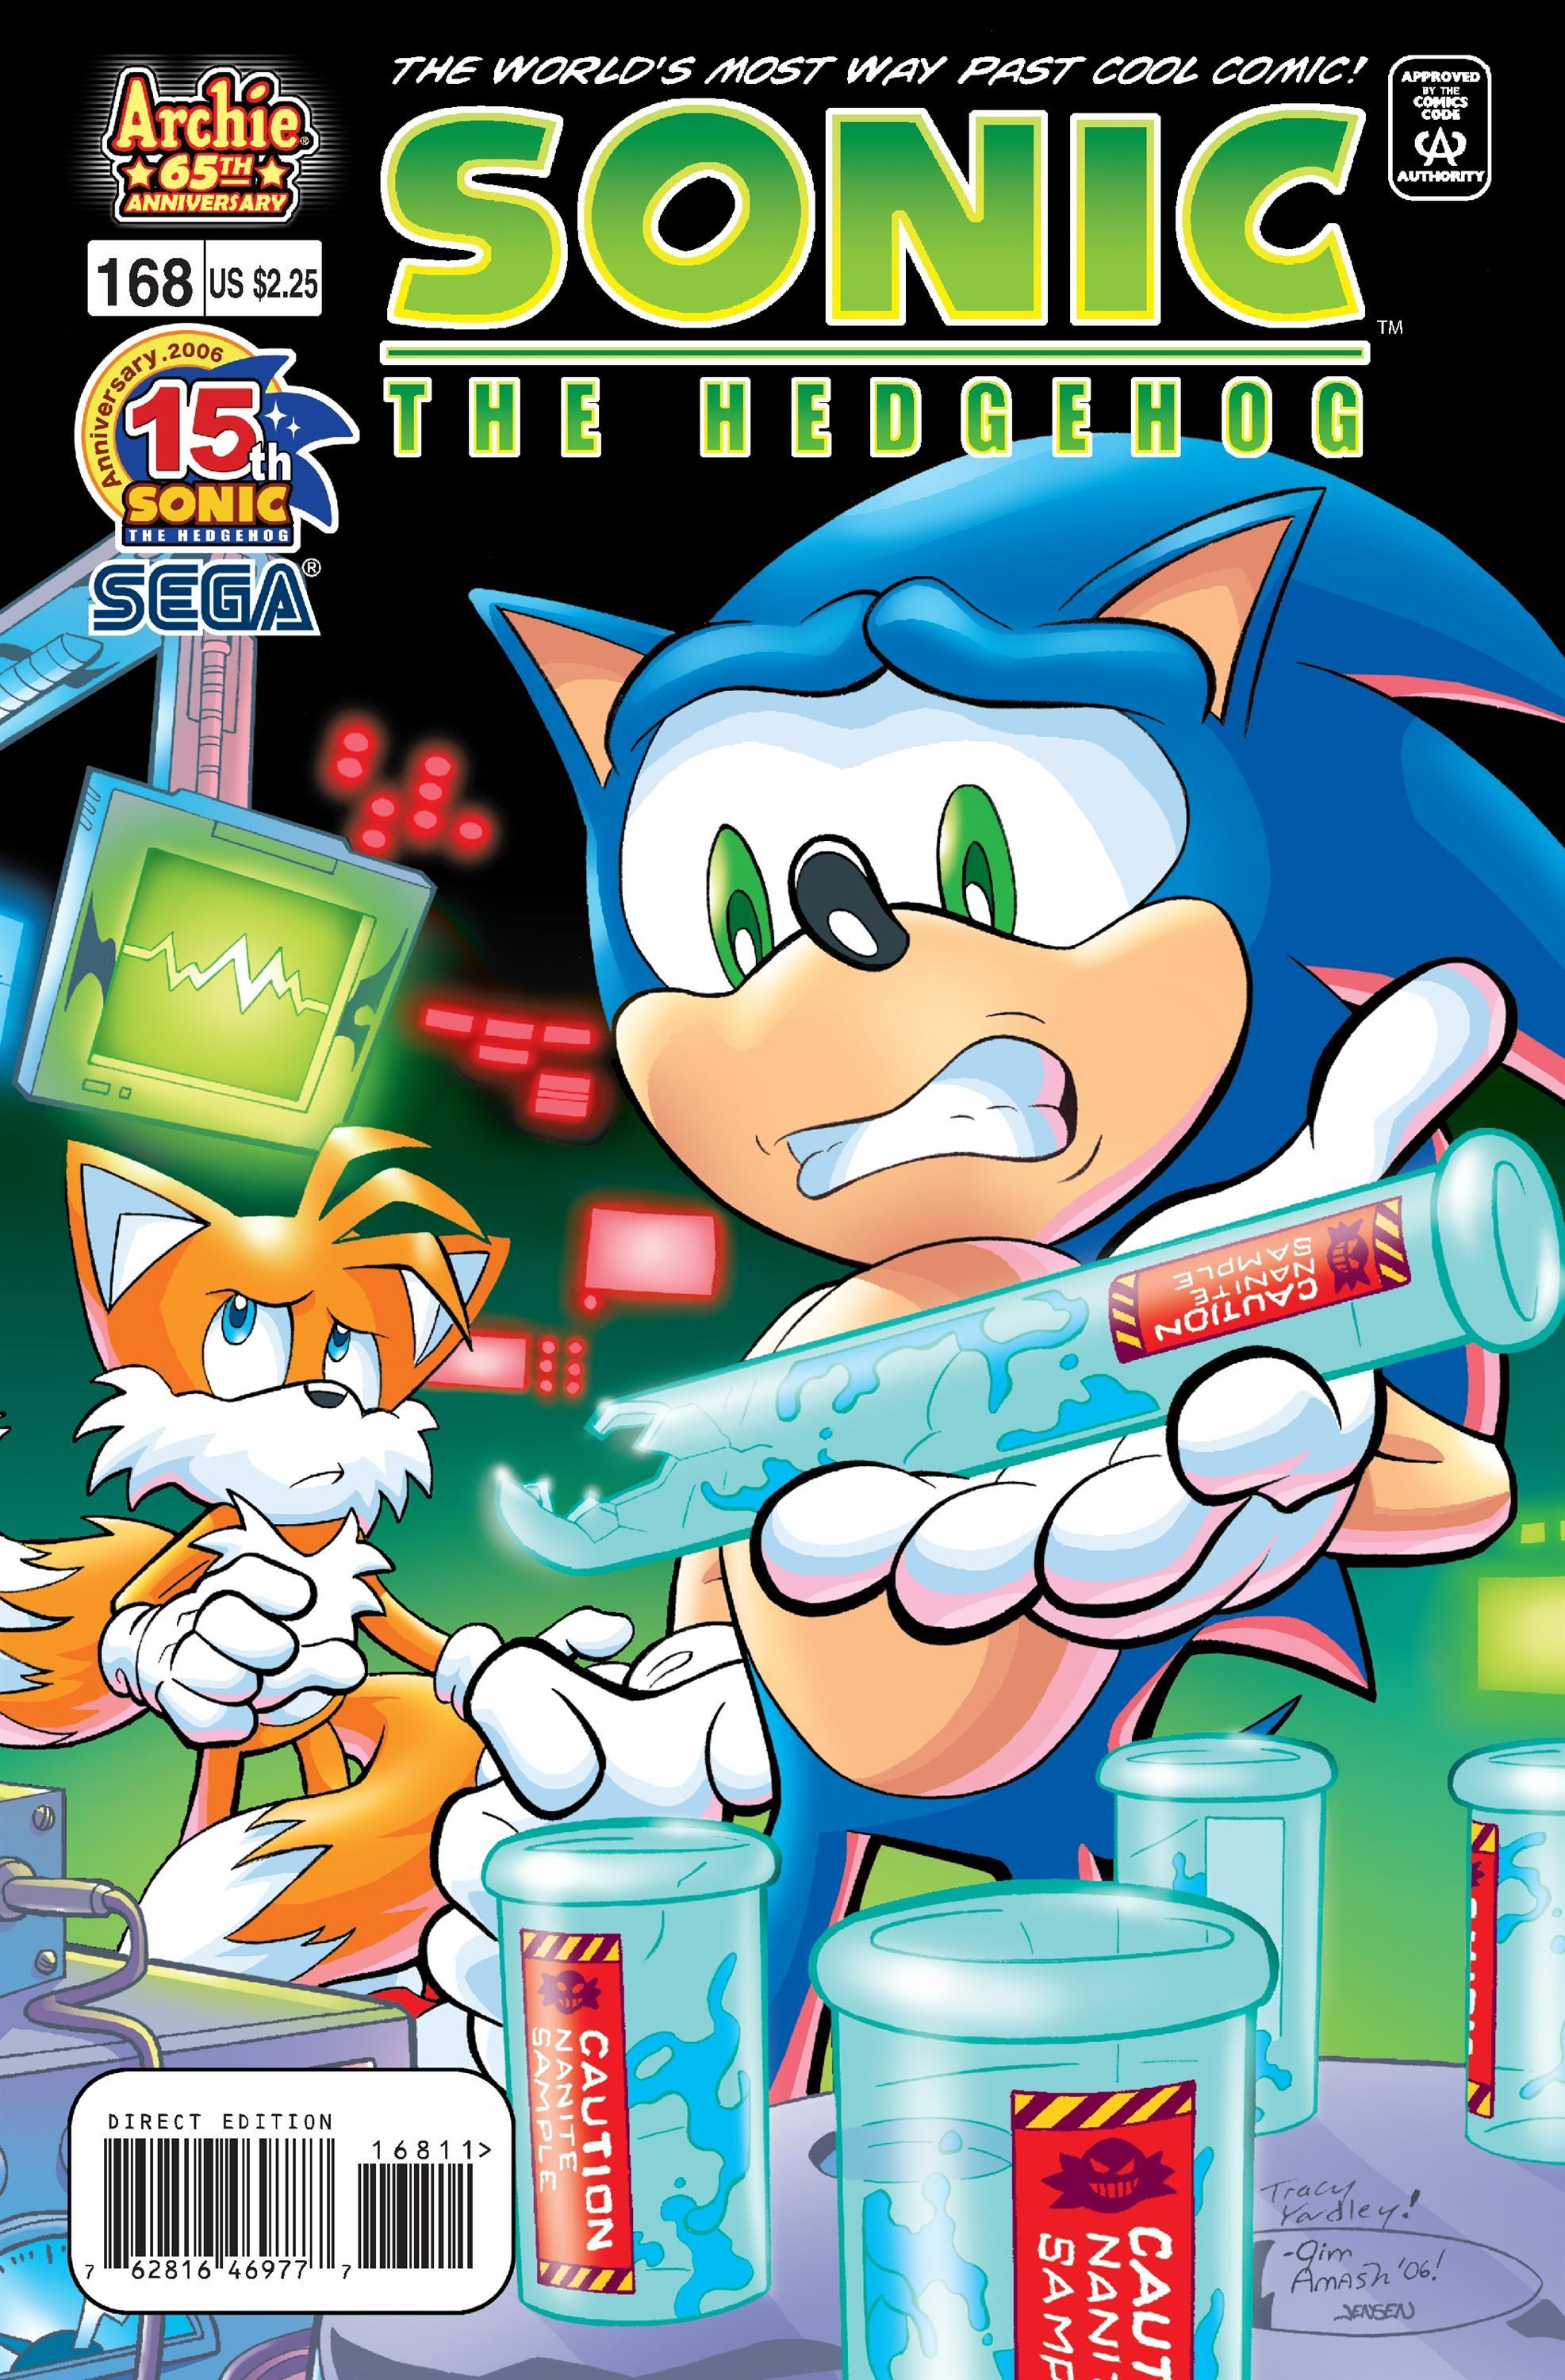 Archie Sonic The Hedgehog Issue 168 Mobius Encyclopaedia